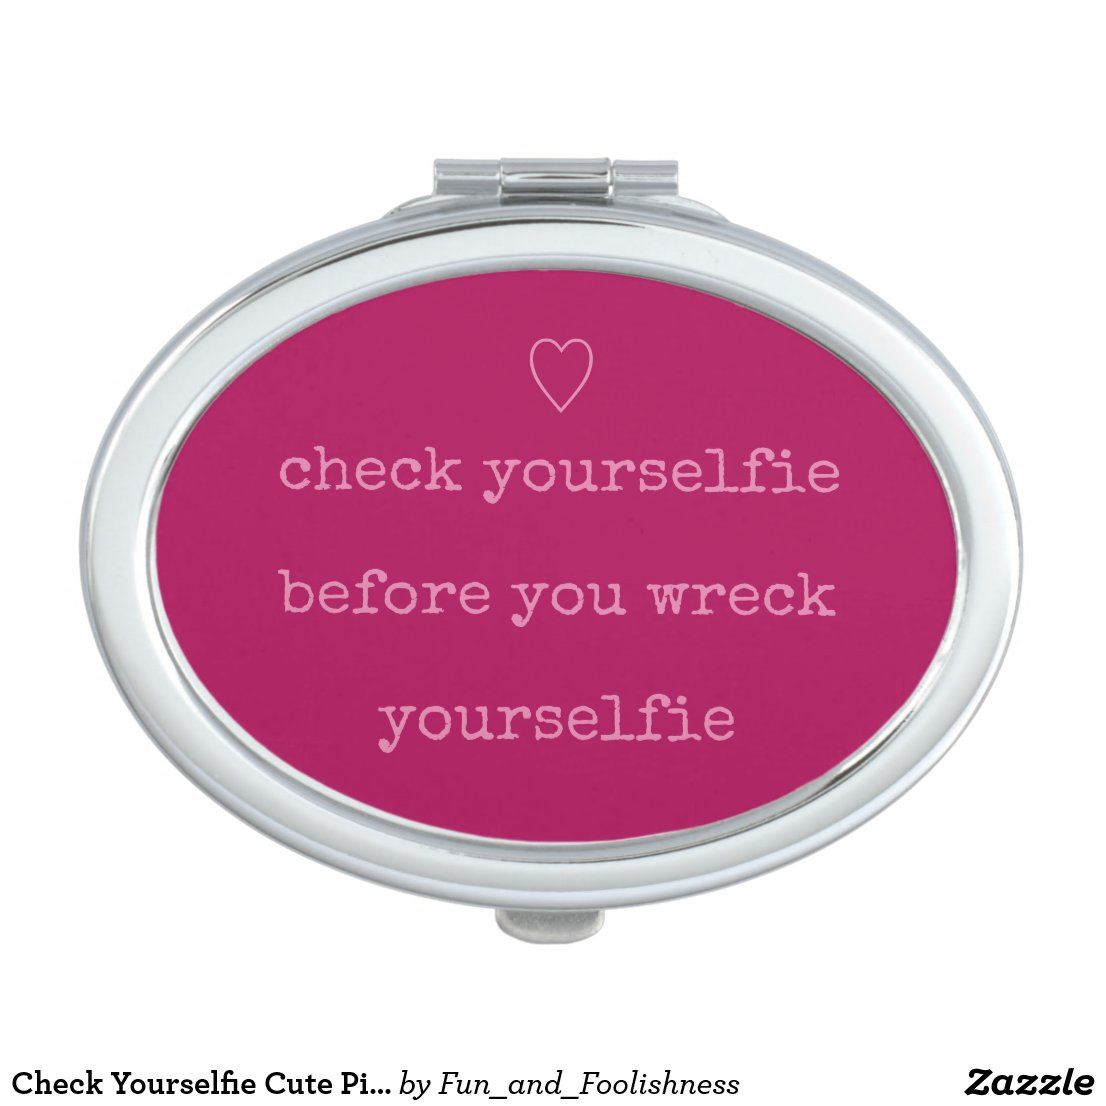 Check Yourselfie Cute Pink Heart Selfie Mirror For Makeup